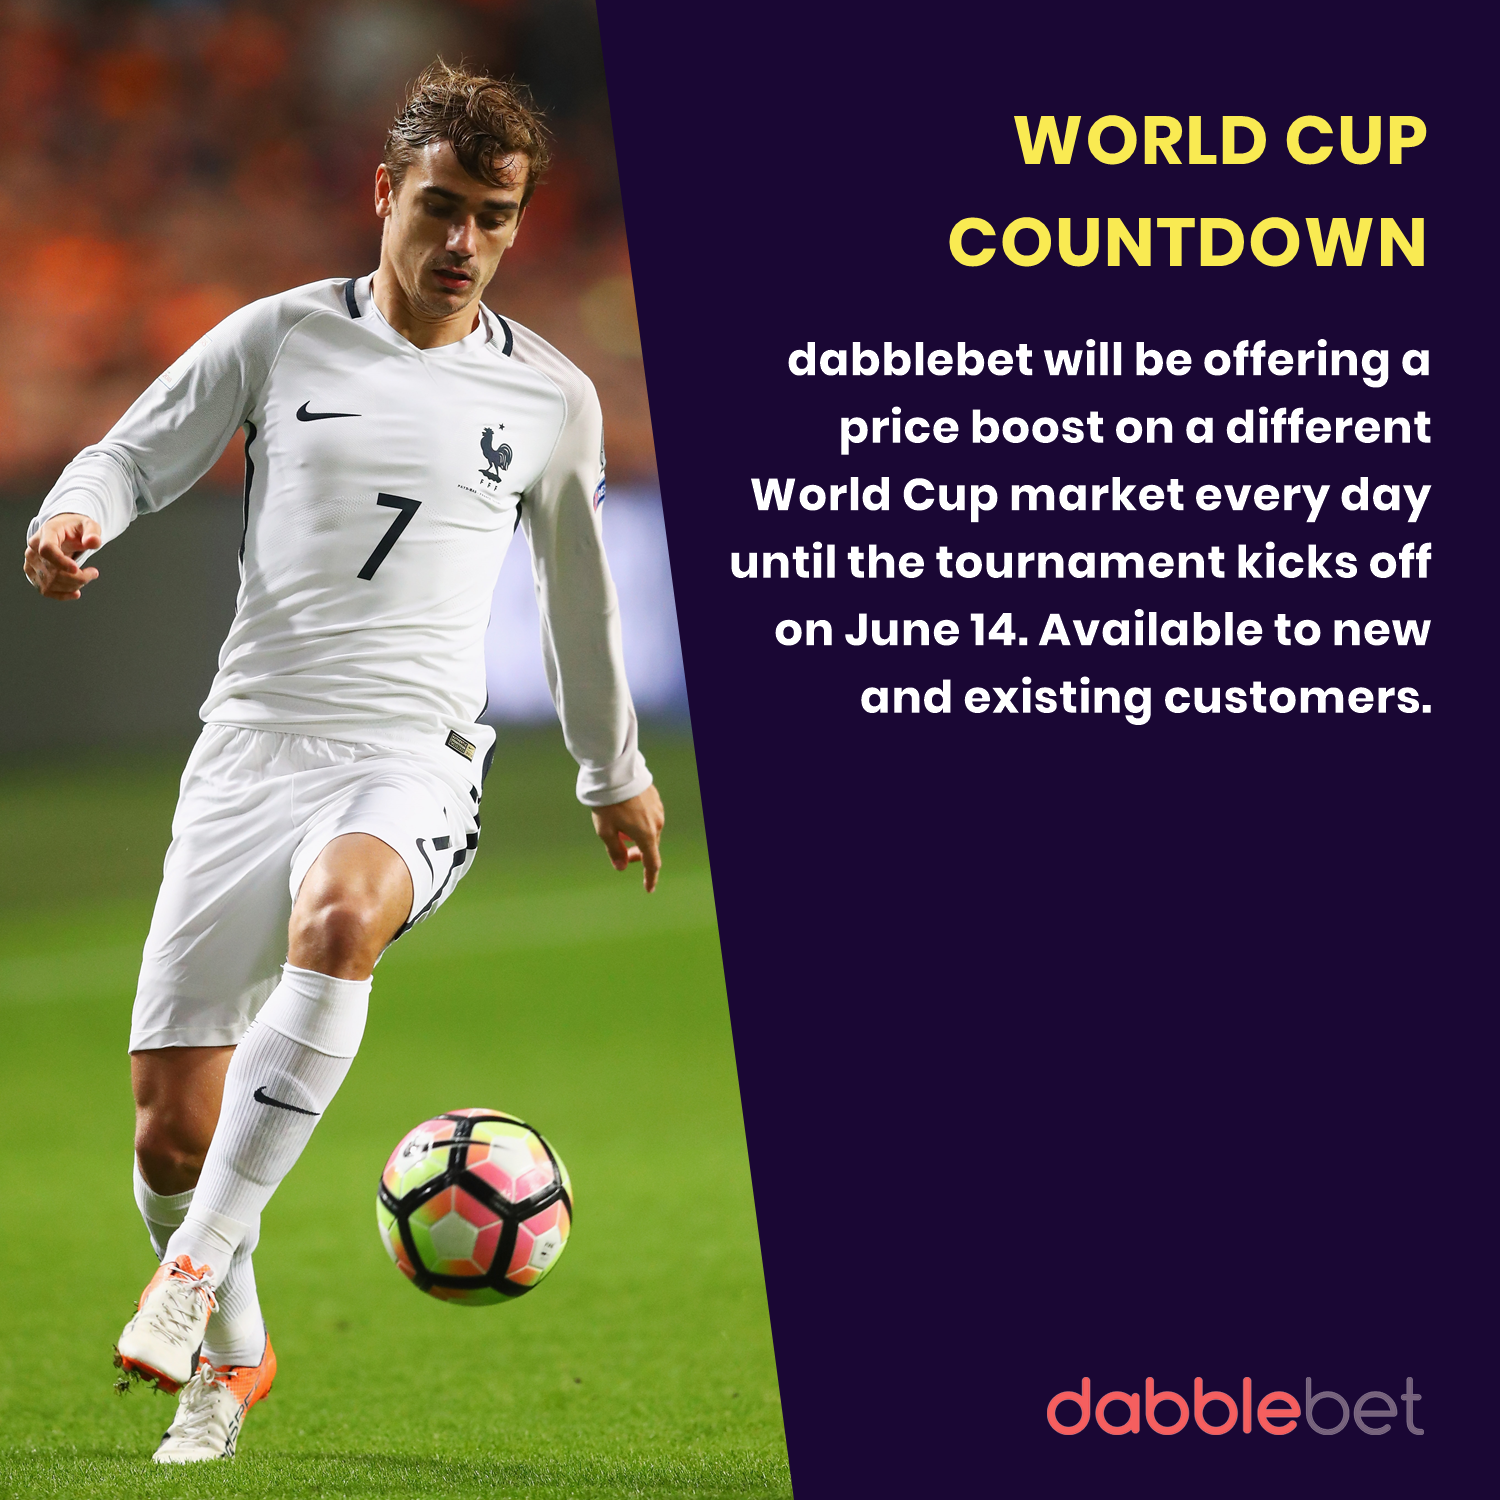 World Cup Countdown at dabblebet